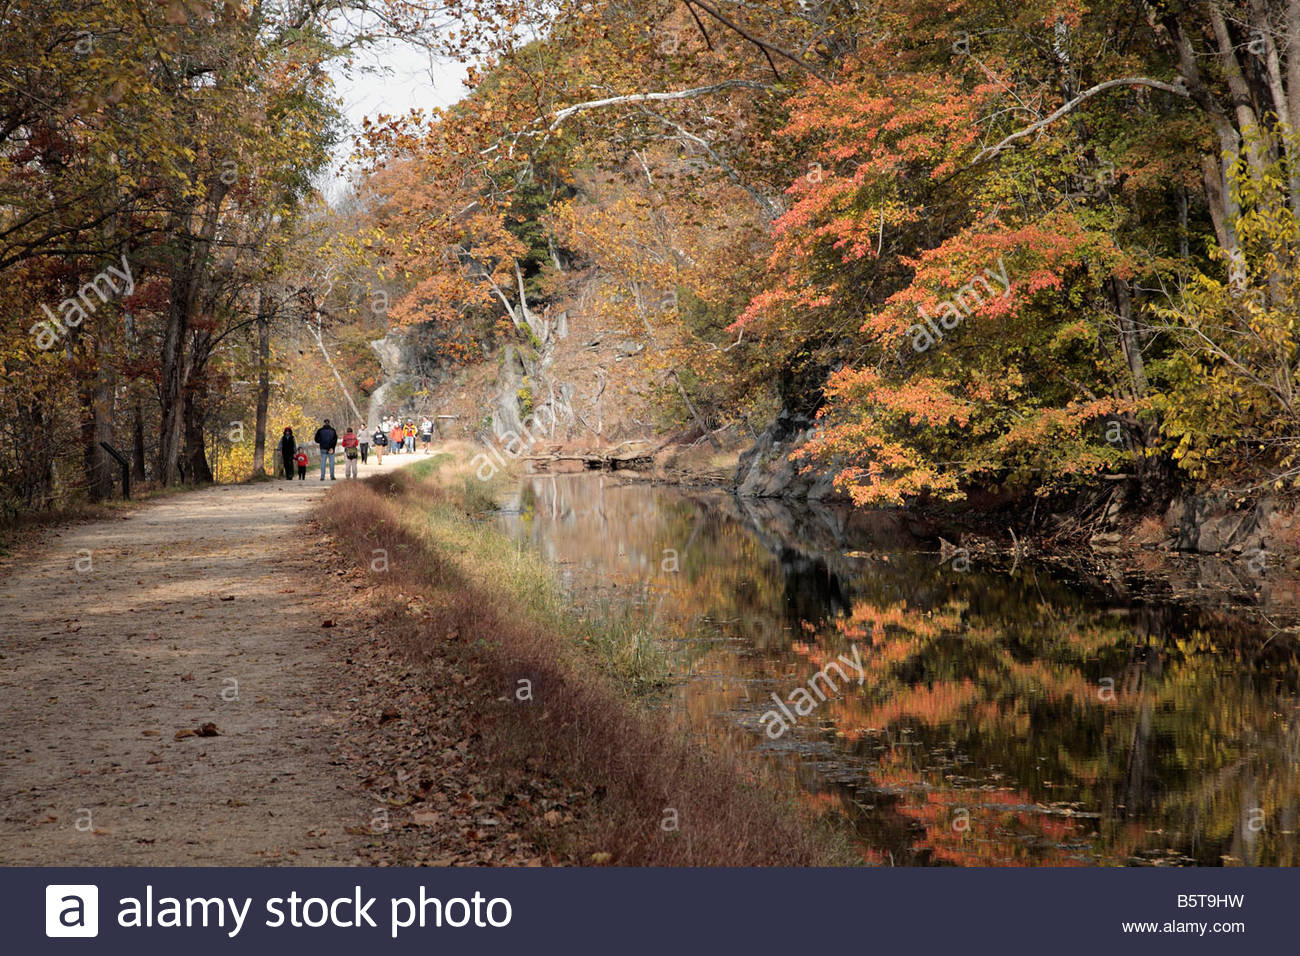 Hikers on the C&O Canal towpath near Lock 16 in Maryland. - Stock Image